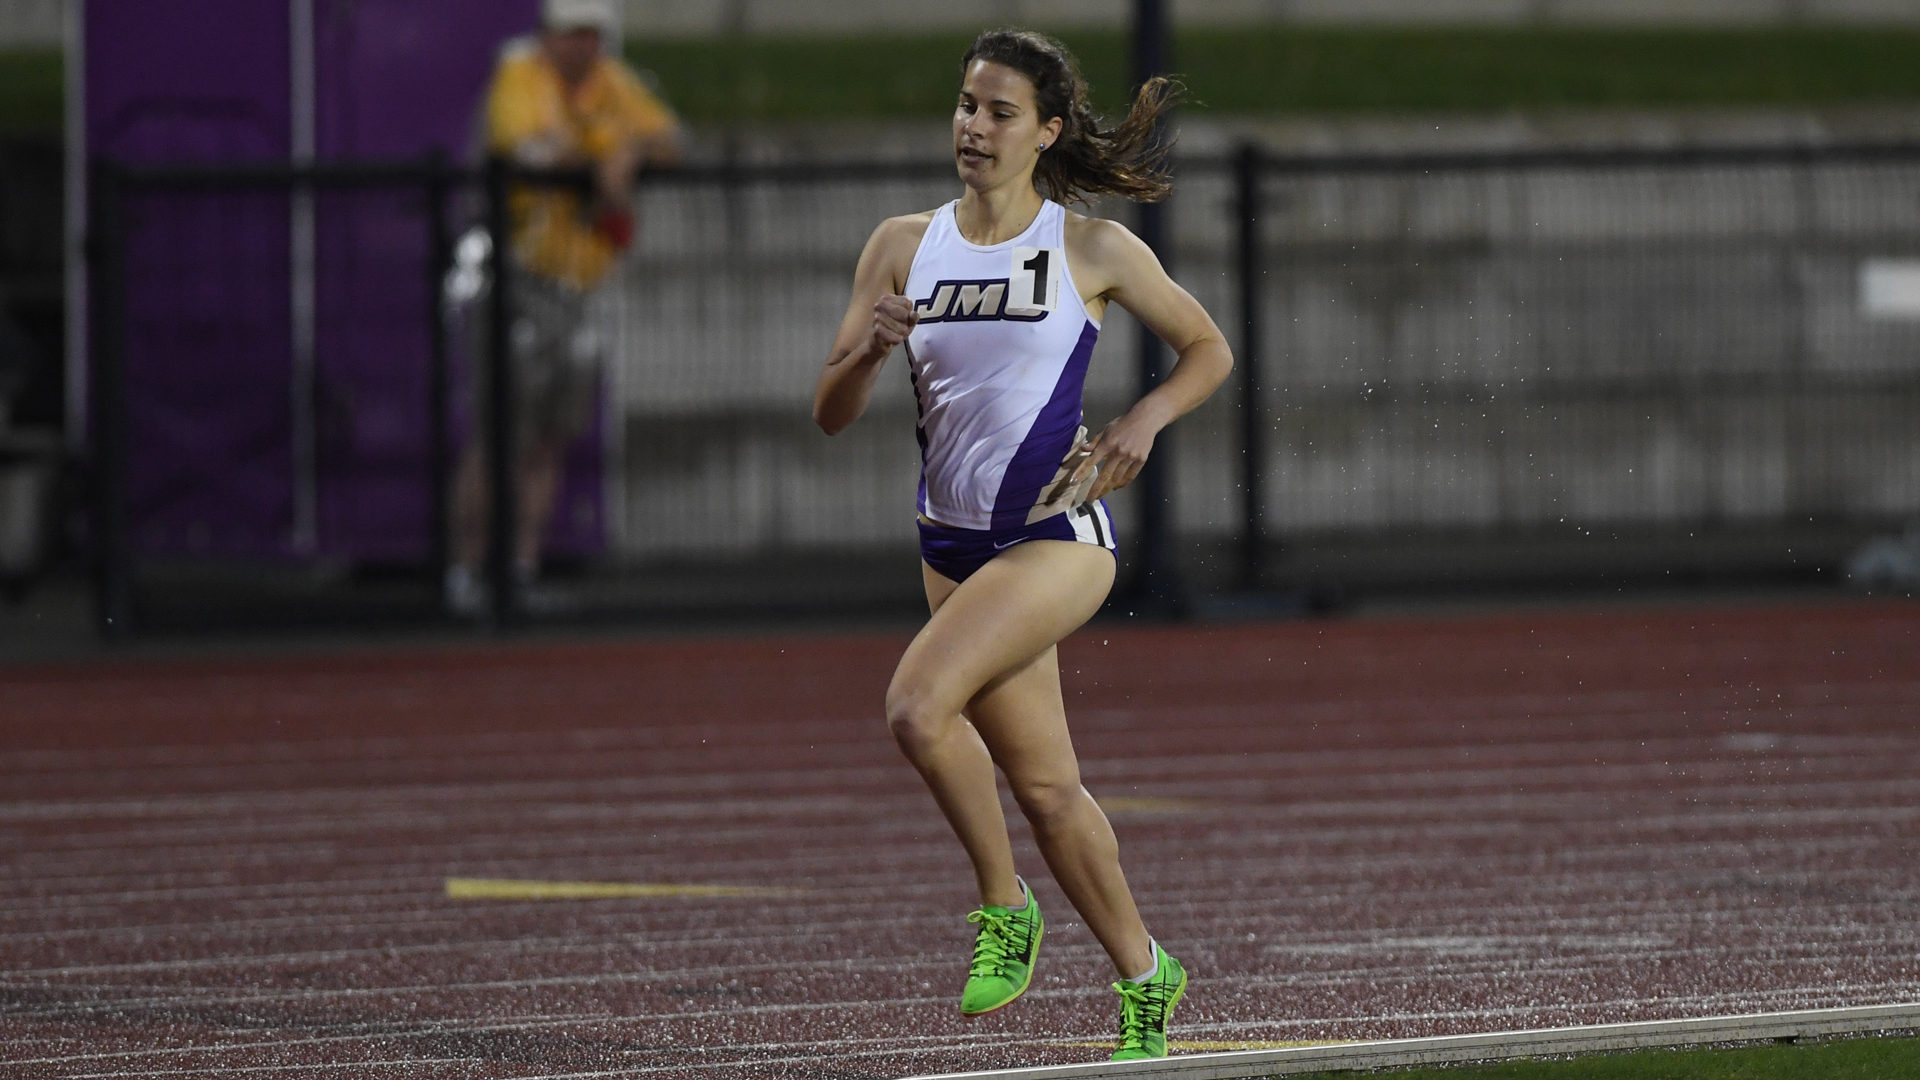 Track & Field: Mundell Takes on NCAA East Preliminary Steeplechase on Friday